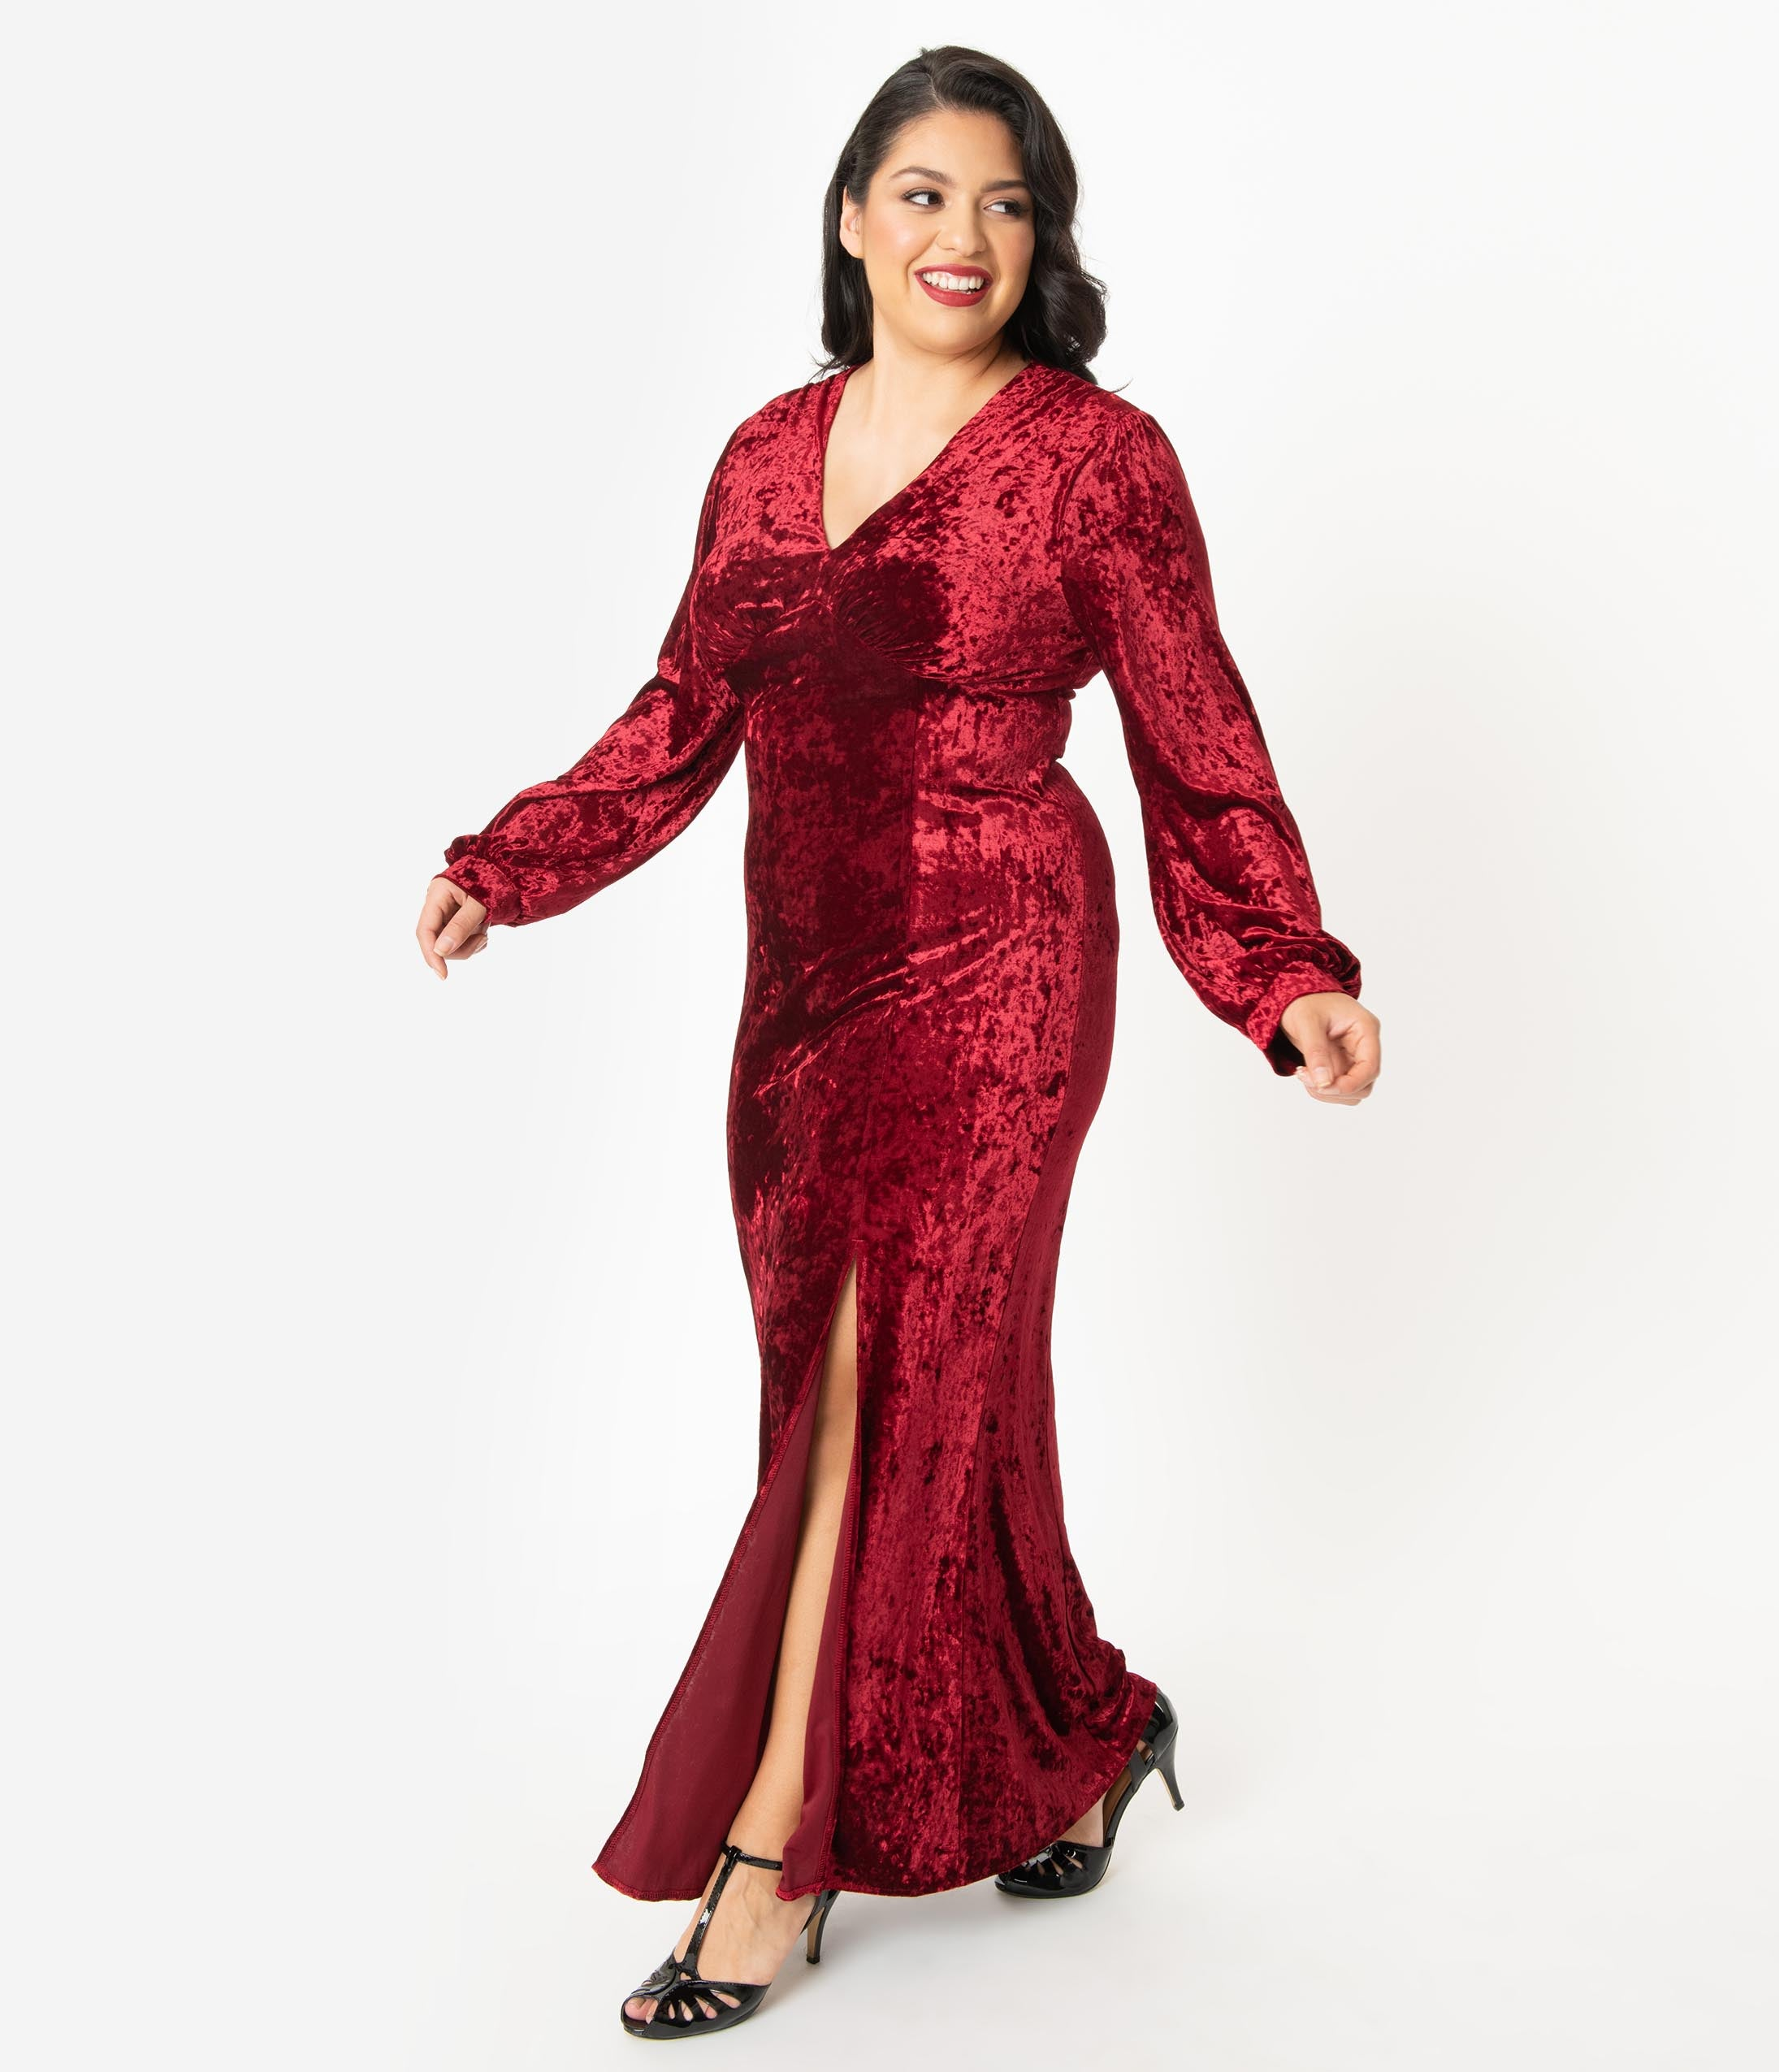 70s Prom, Formal, Evening, Party Dresses Plus Size 1970S Style Crushed Burgundy Velvet Miley Gown $88.00 AT vintagedancer.com